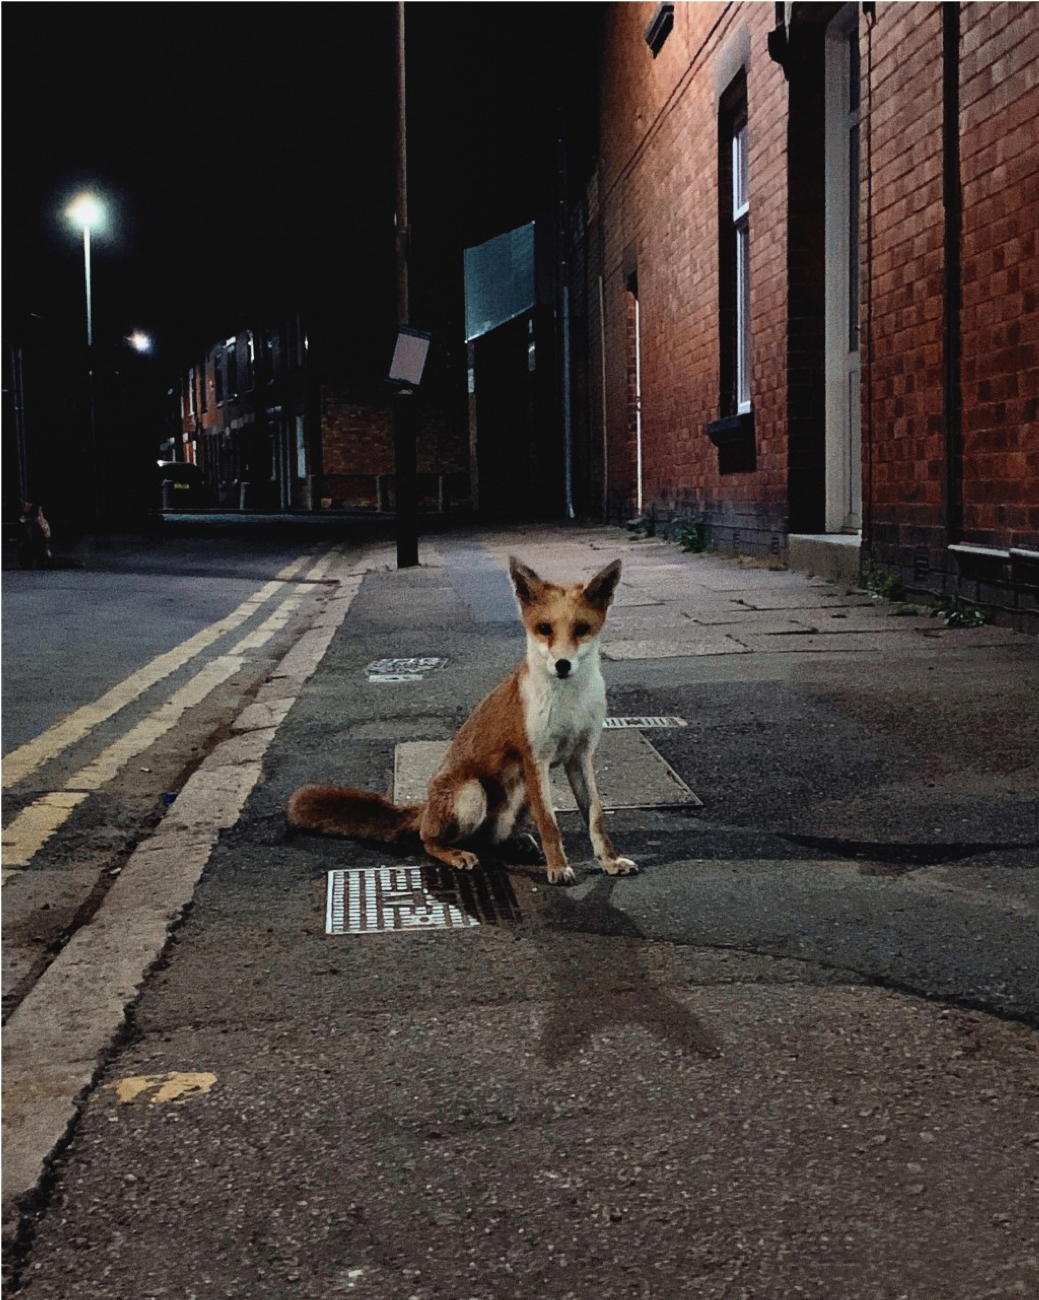 Photo of a red fox in an urban setting